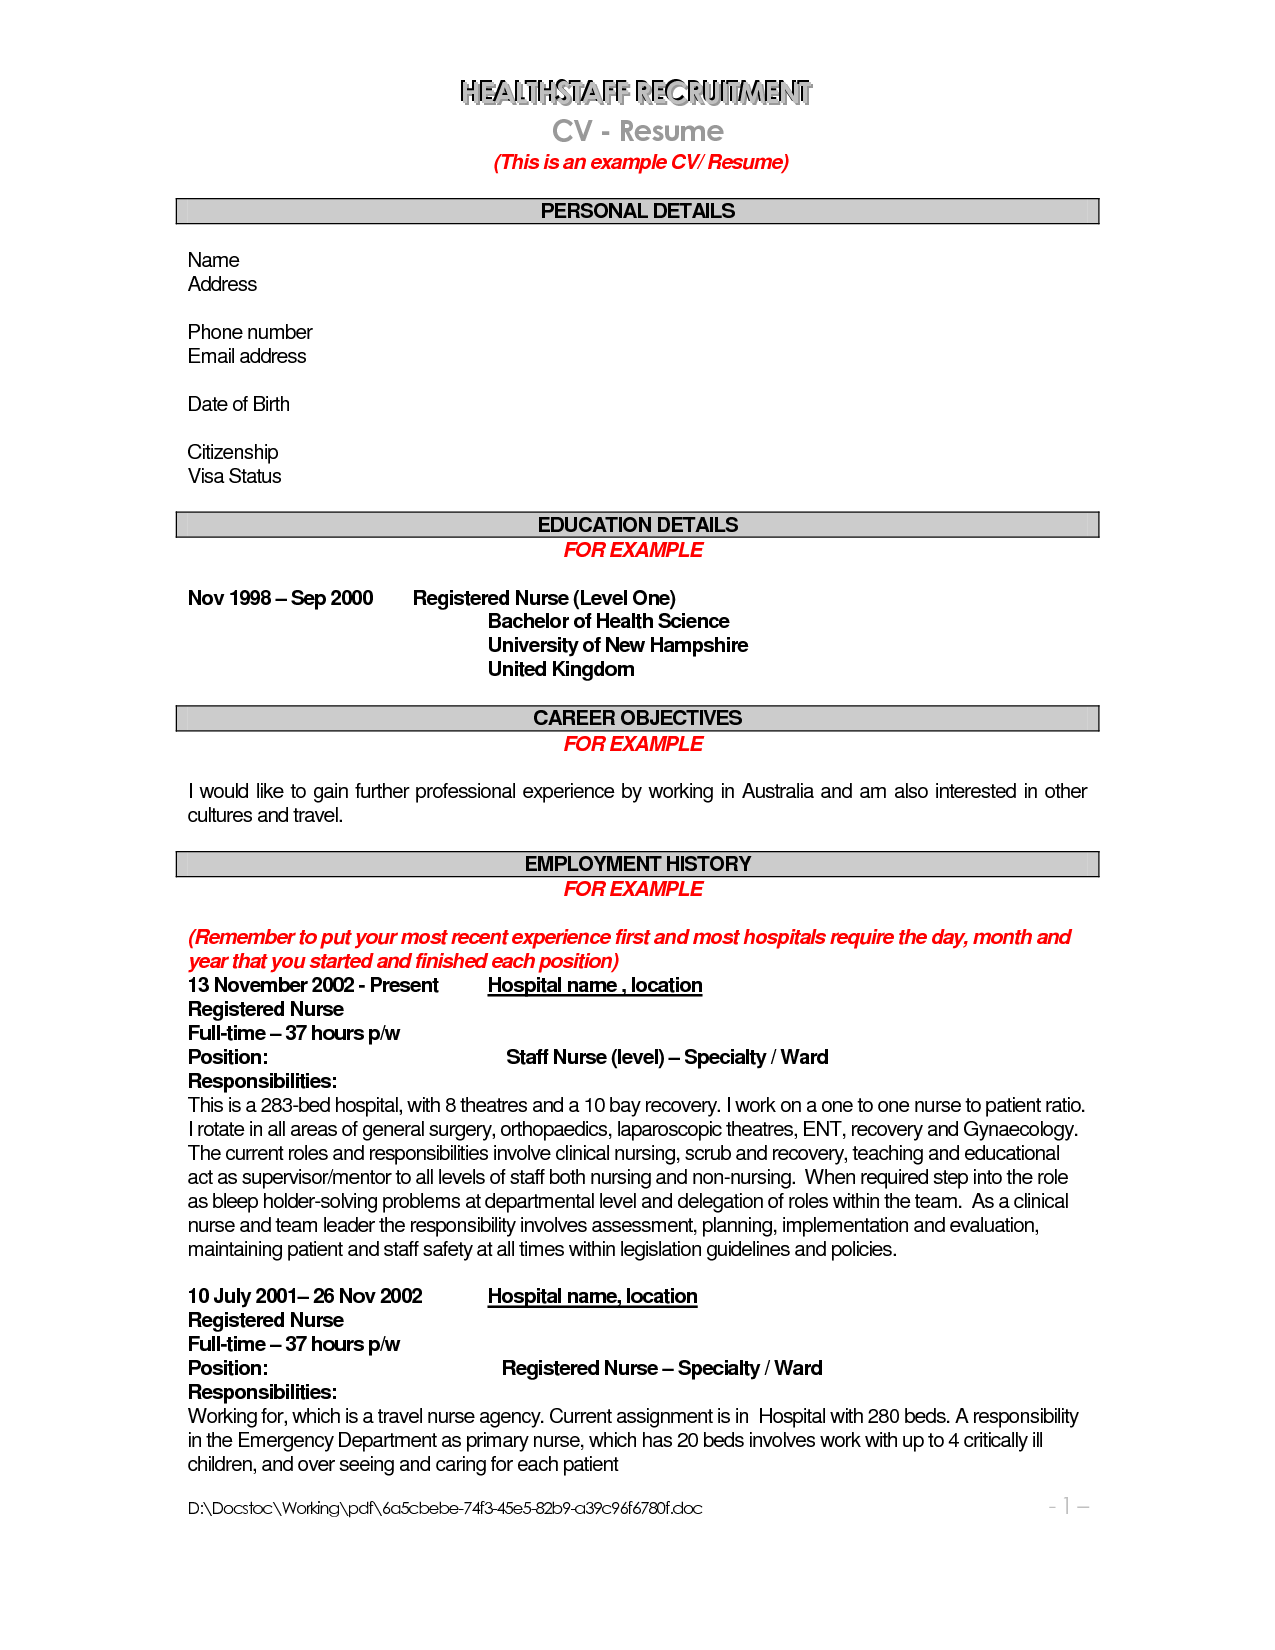 Resume Examples Responsibilities | Resume Examples | Pinterest ...